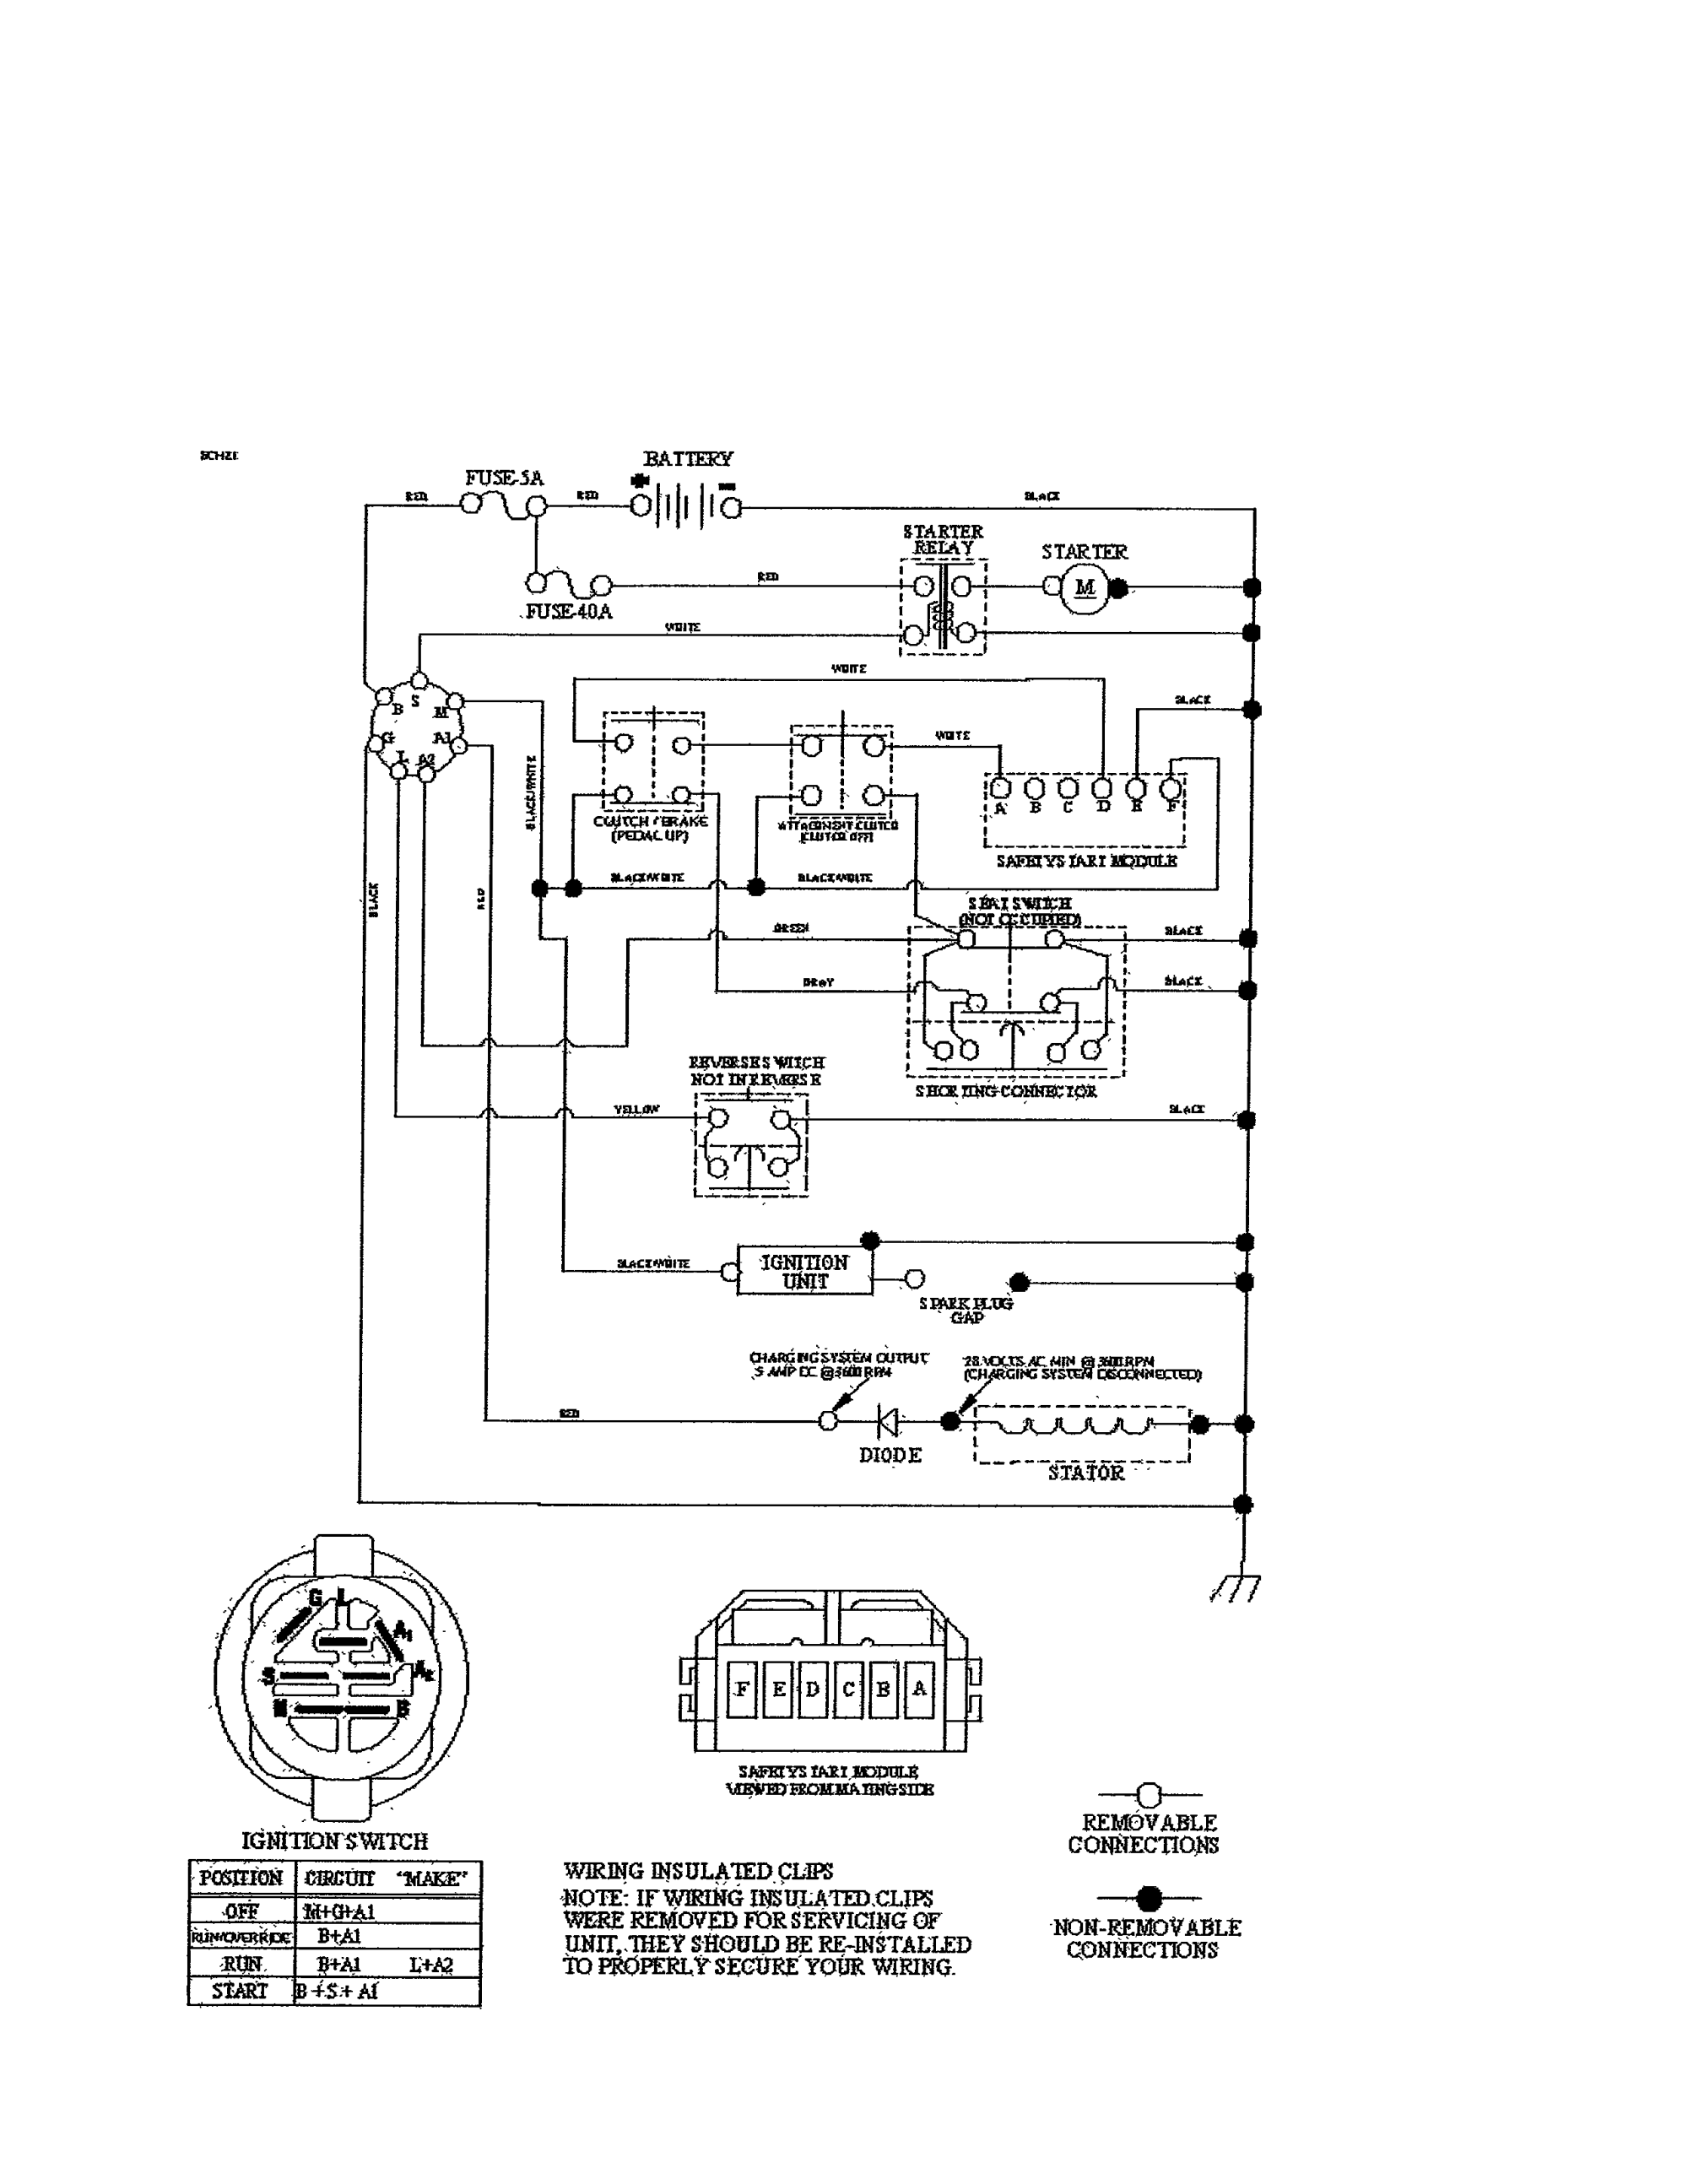 hight resolution of diagram washer ge schematic ghwp1000m0ww trusted wiring diagram general electric washer schematic model whdsr316g1ww